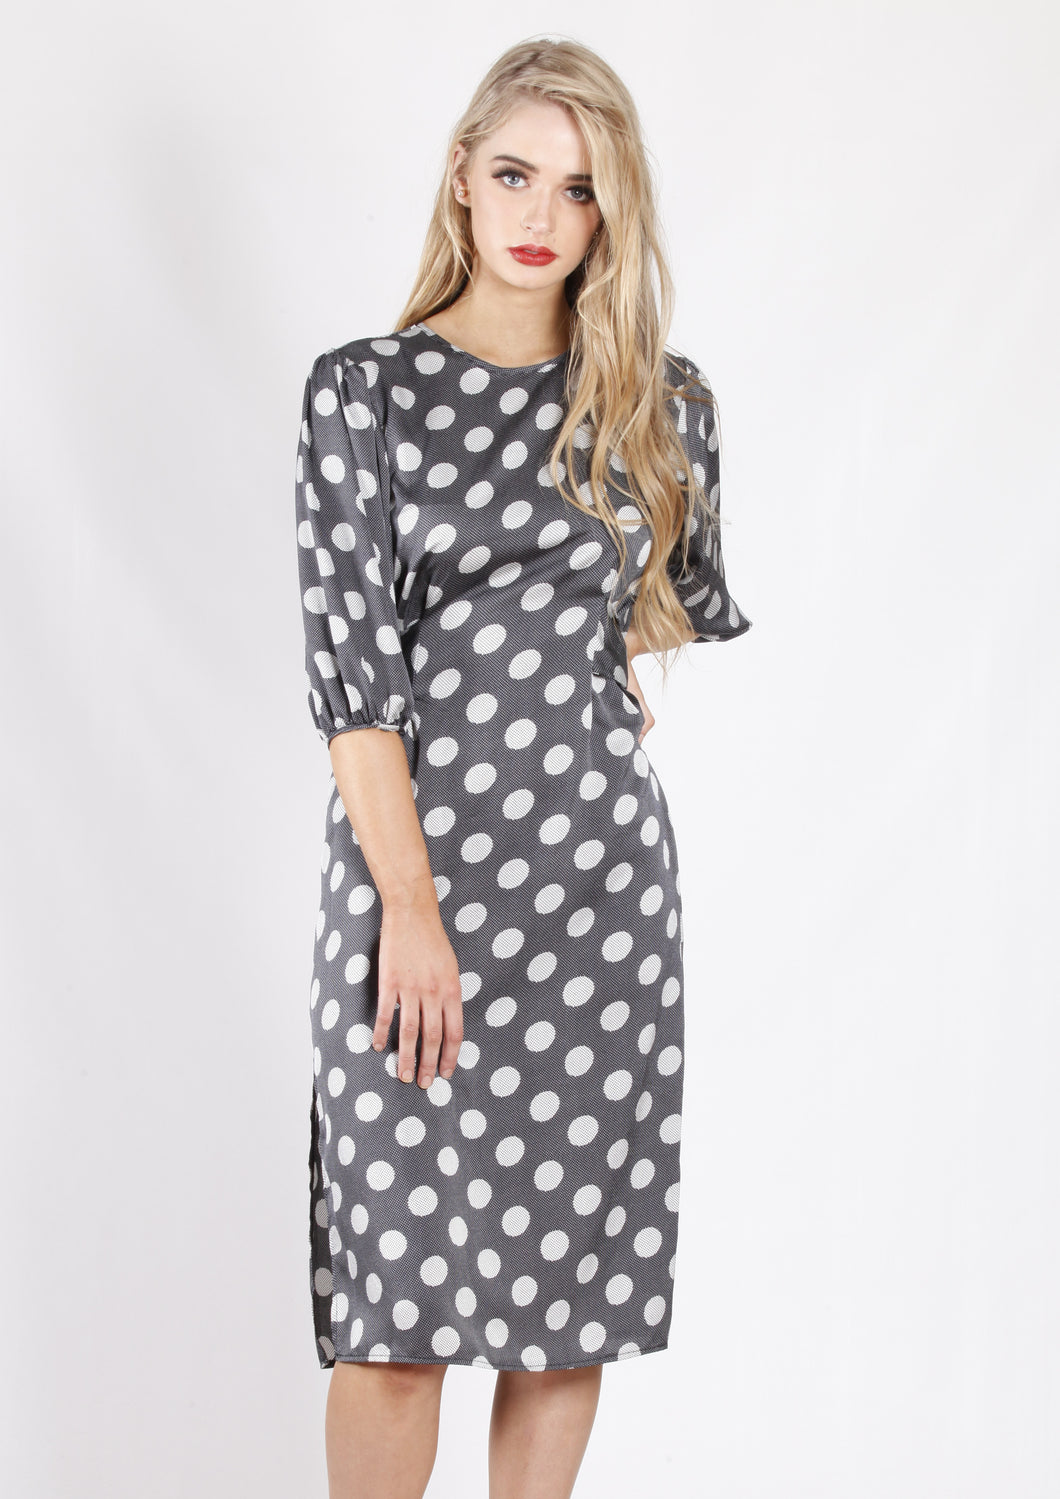 XW16217SS Polka Dot Tie Dress (Pack)